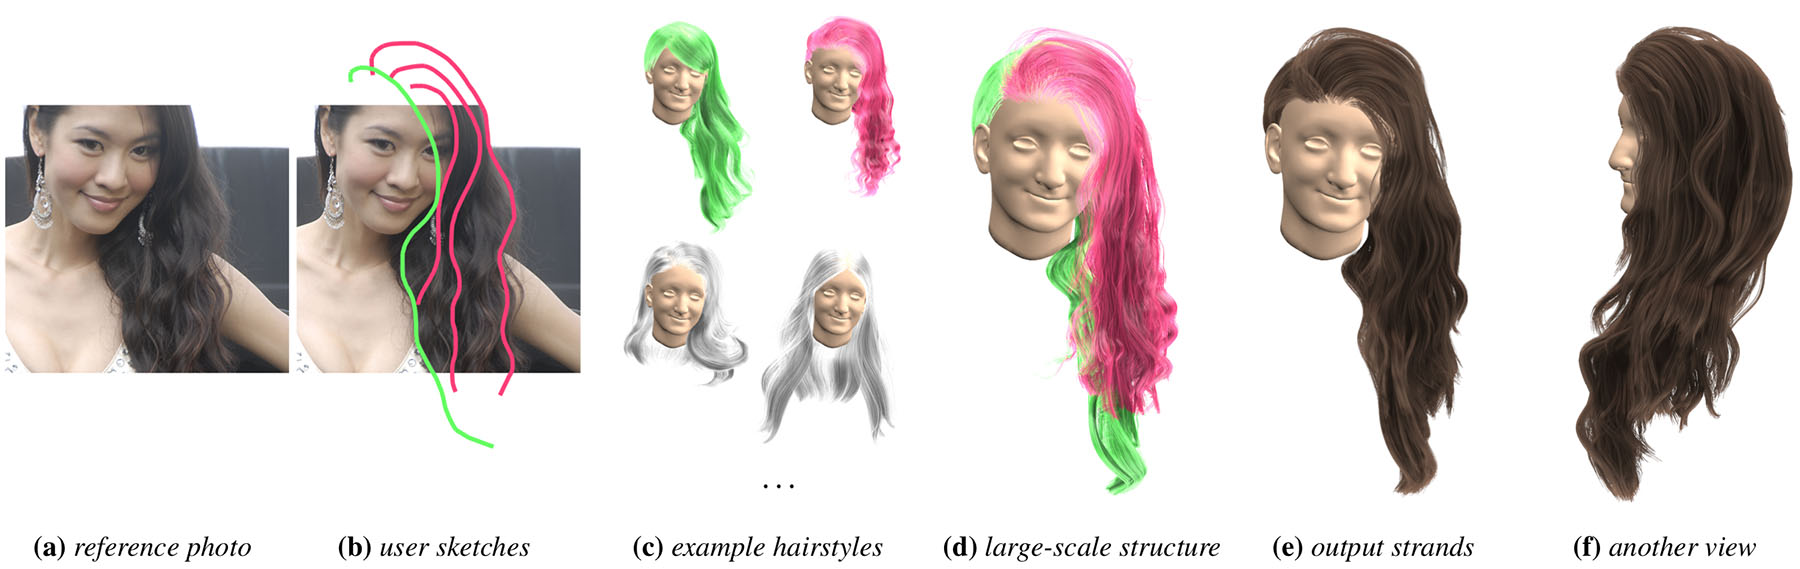 Miraculous Single View Hair Modeling Using A Hairstyle Database Linjie Luo Short Hairstyles Gunalazisus